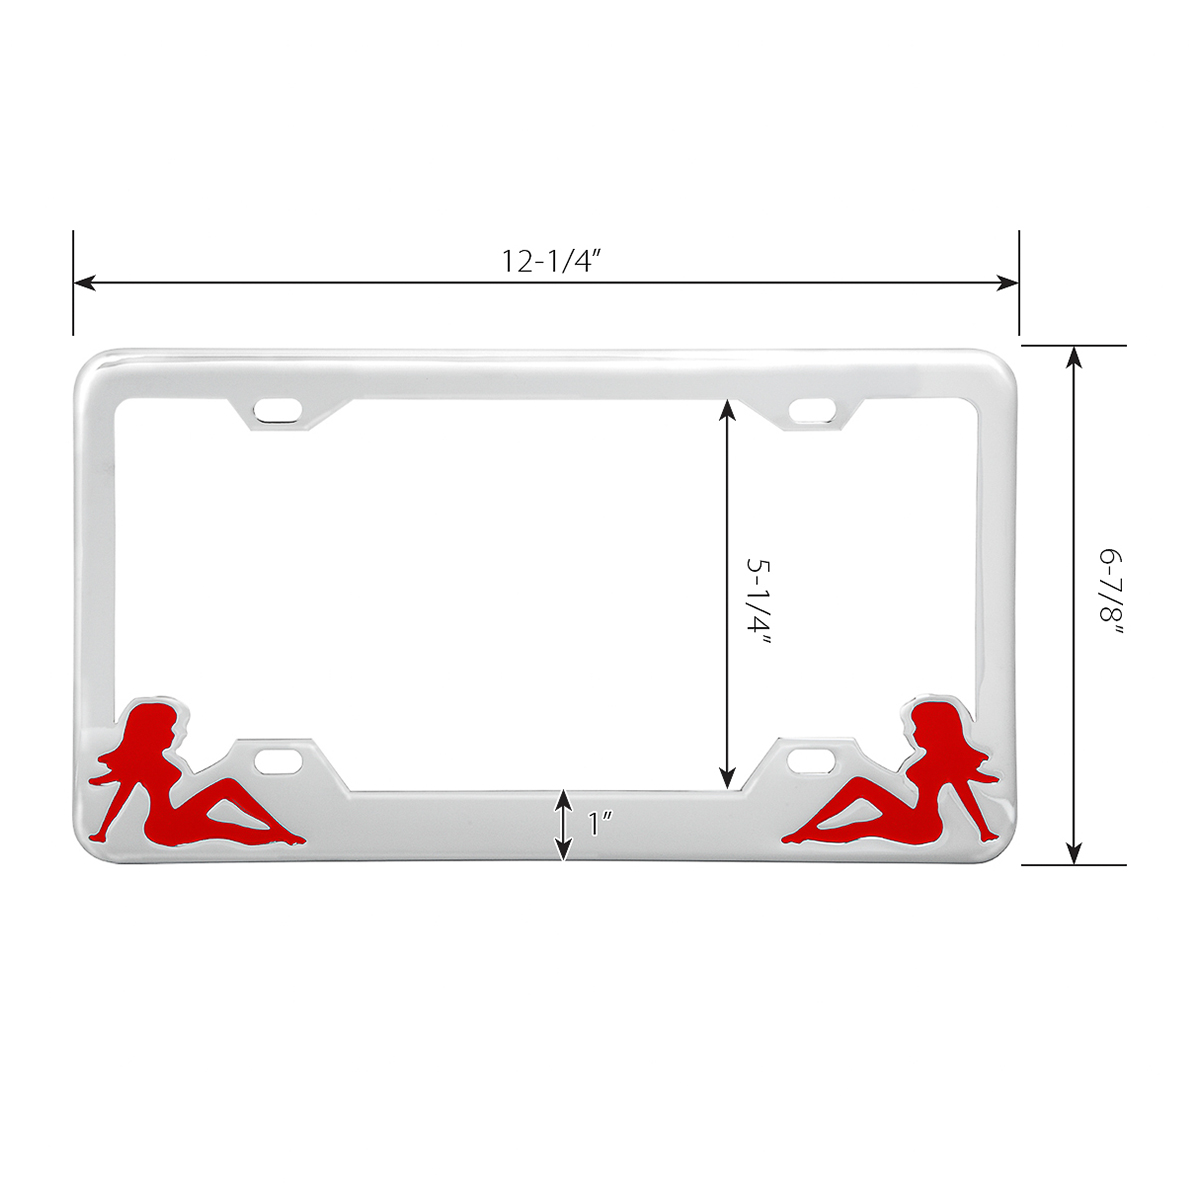 Chrome Plated Steel License Plate Frame with Red Color Sitting Ladies - Measurements